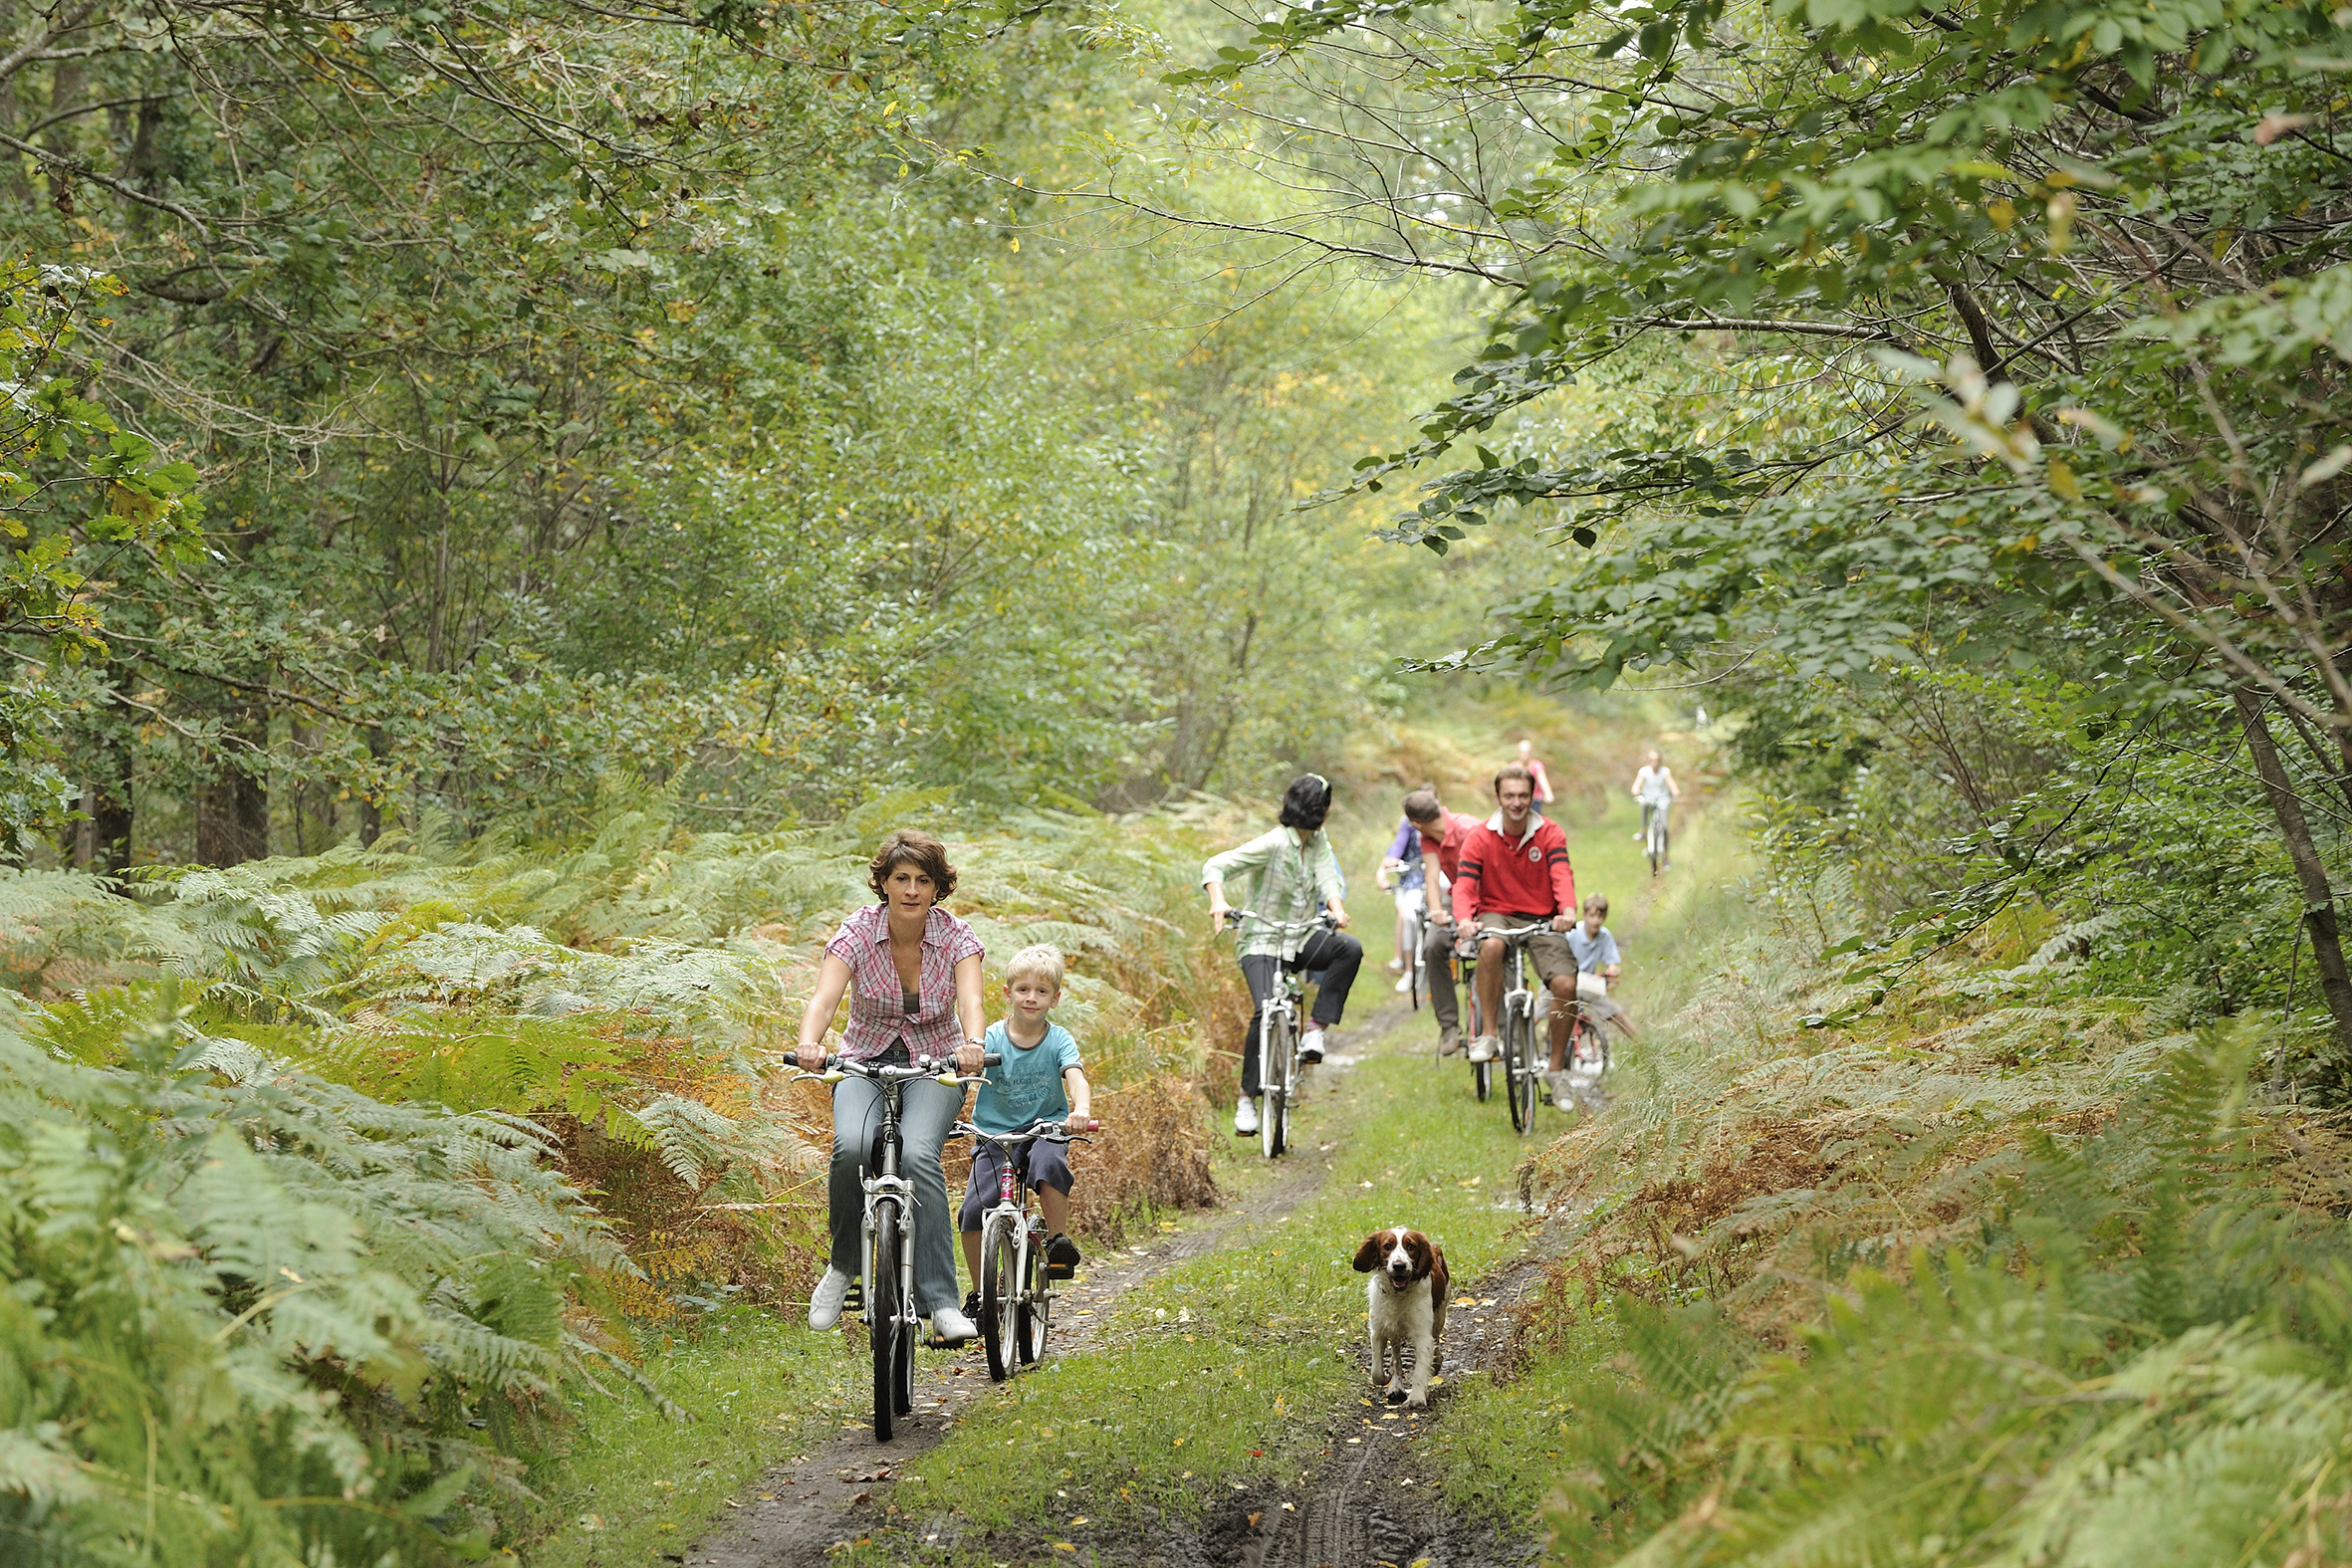 Biking in the forrest (Photo: Oise Tourisme, Jean-Pierre Gilson)